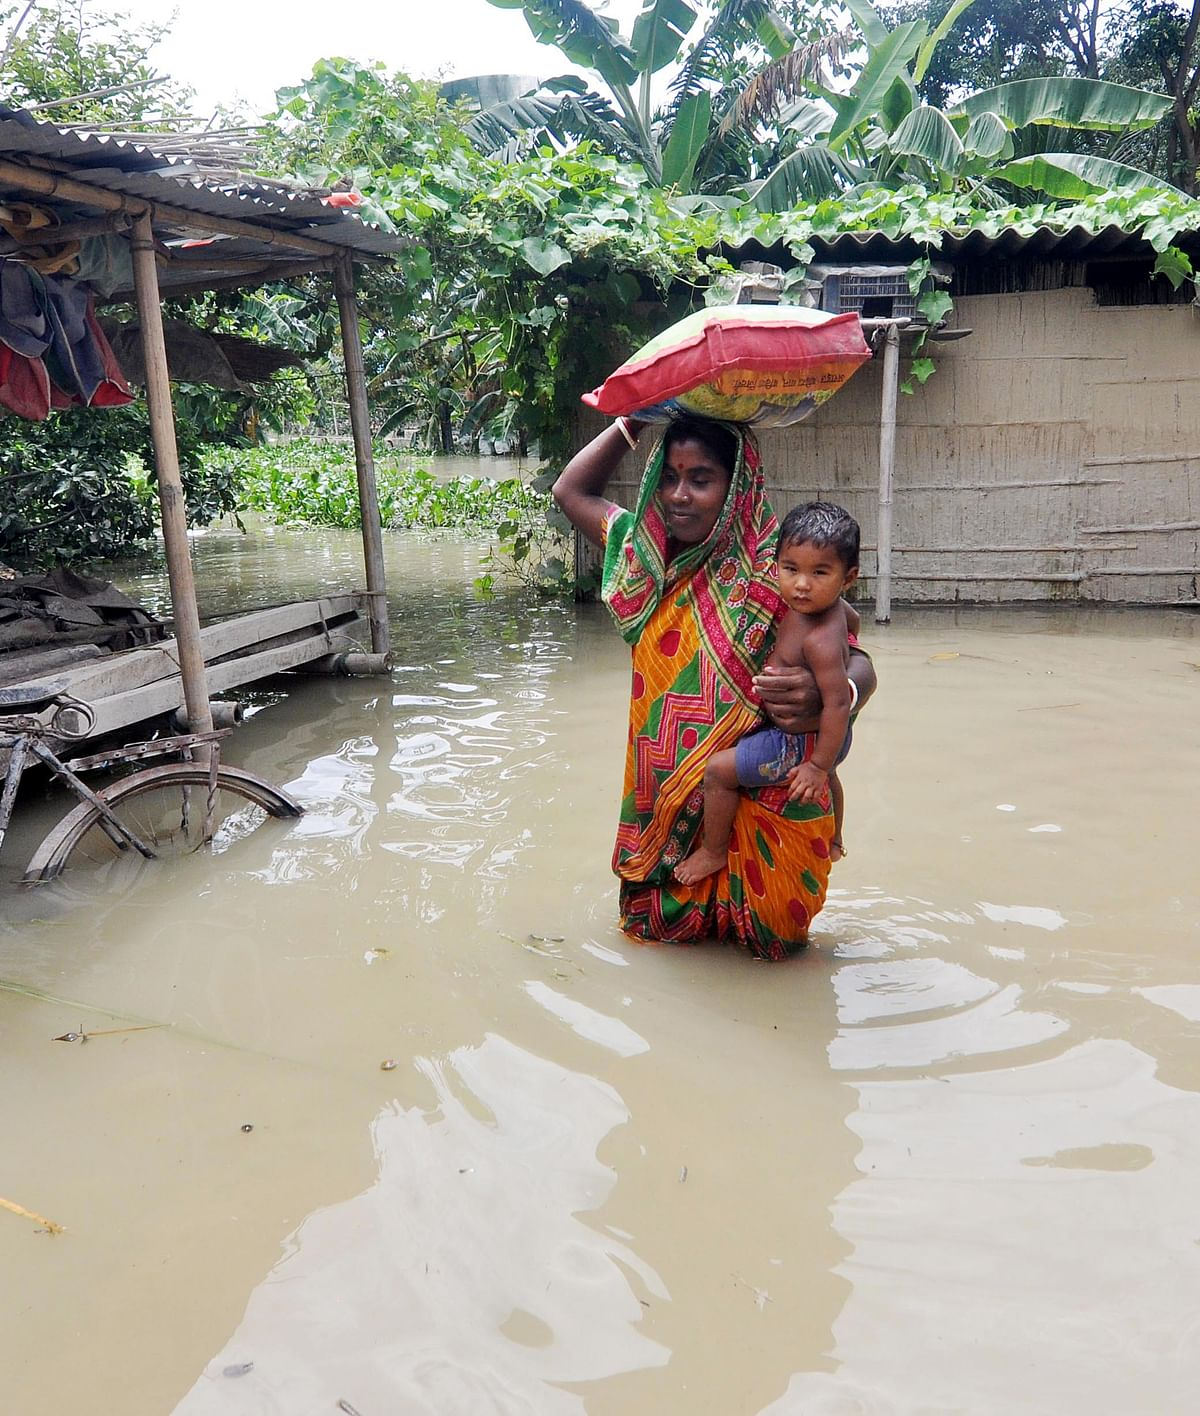 Assam, July 23 (ANI): A woman with her child stand in the flooded water of Murkata village in Morigaon district on Thursday.